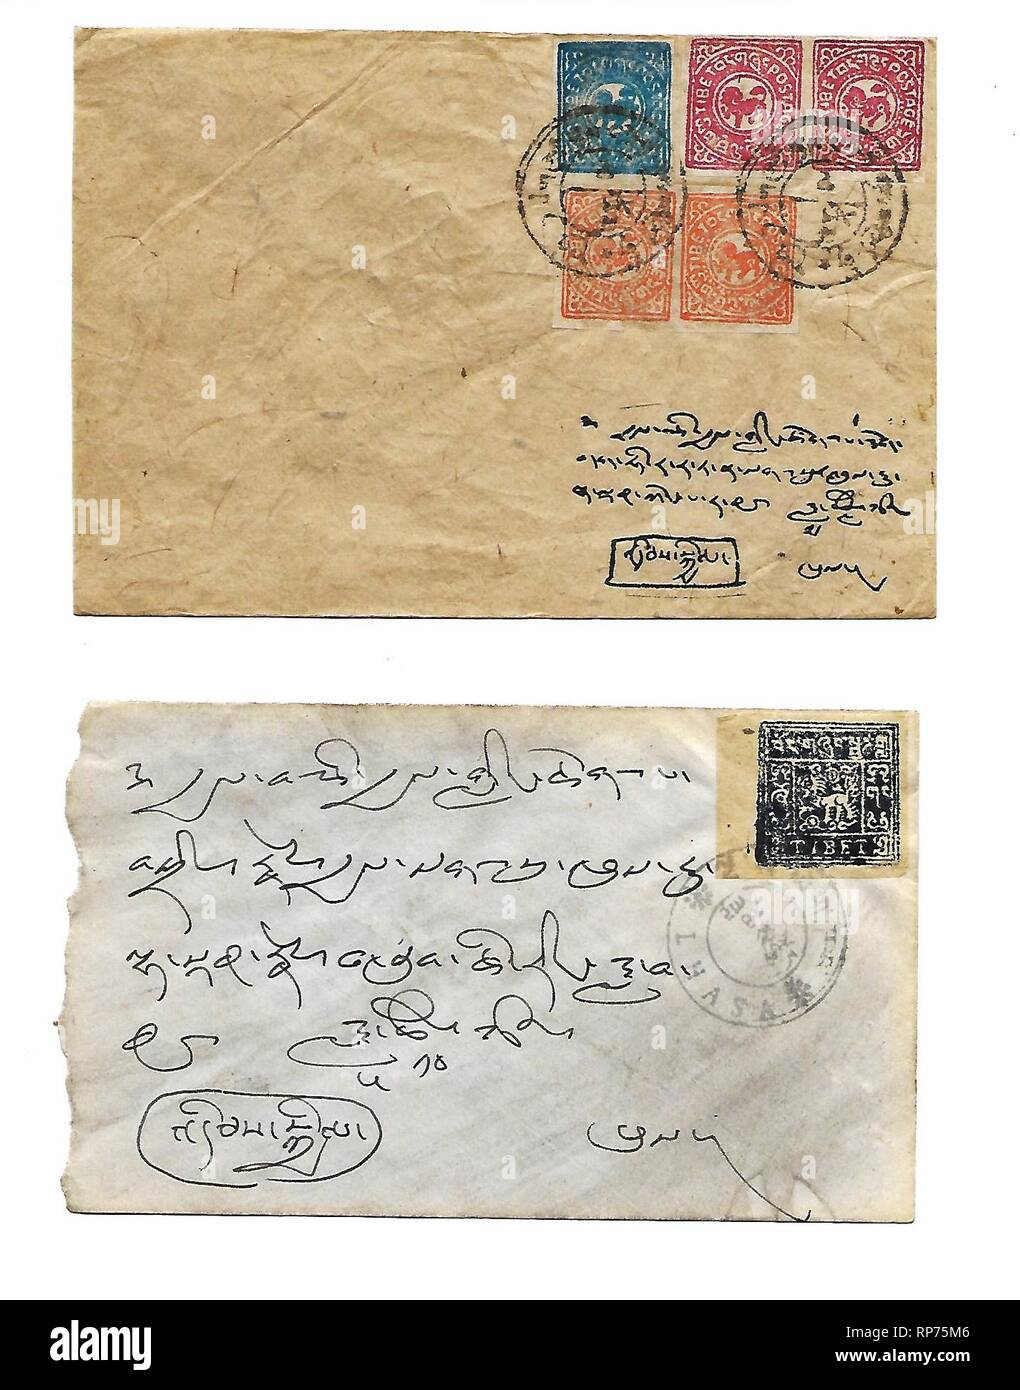 Stamped envelopes mailed in independent Tibet, possibly as late as the mid-1950s. Tibet was not a member of the Universal Postal Union, so that letters sent abroad had to be carry Indian stamps also. - Stock Image